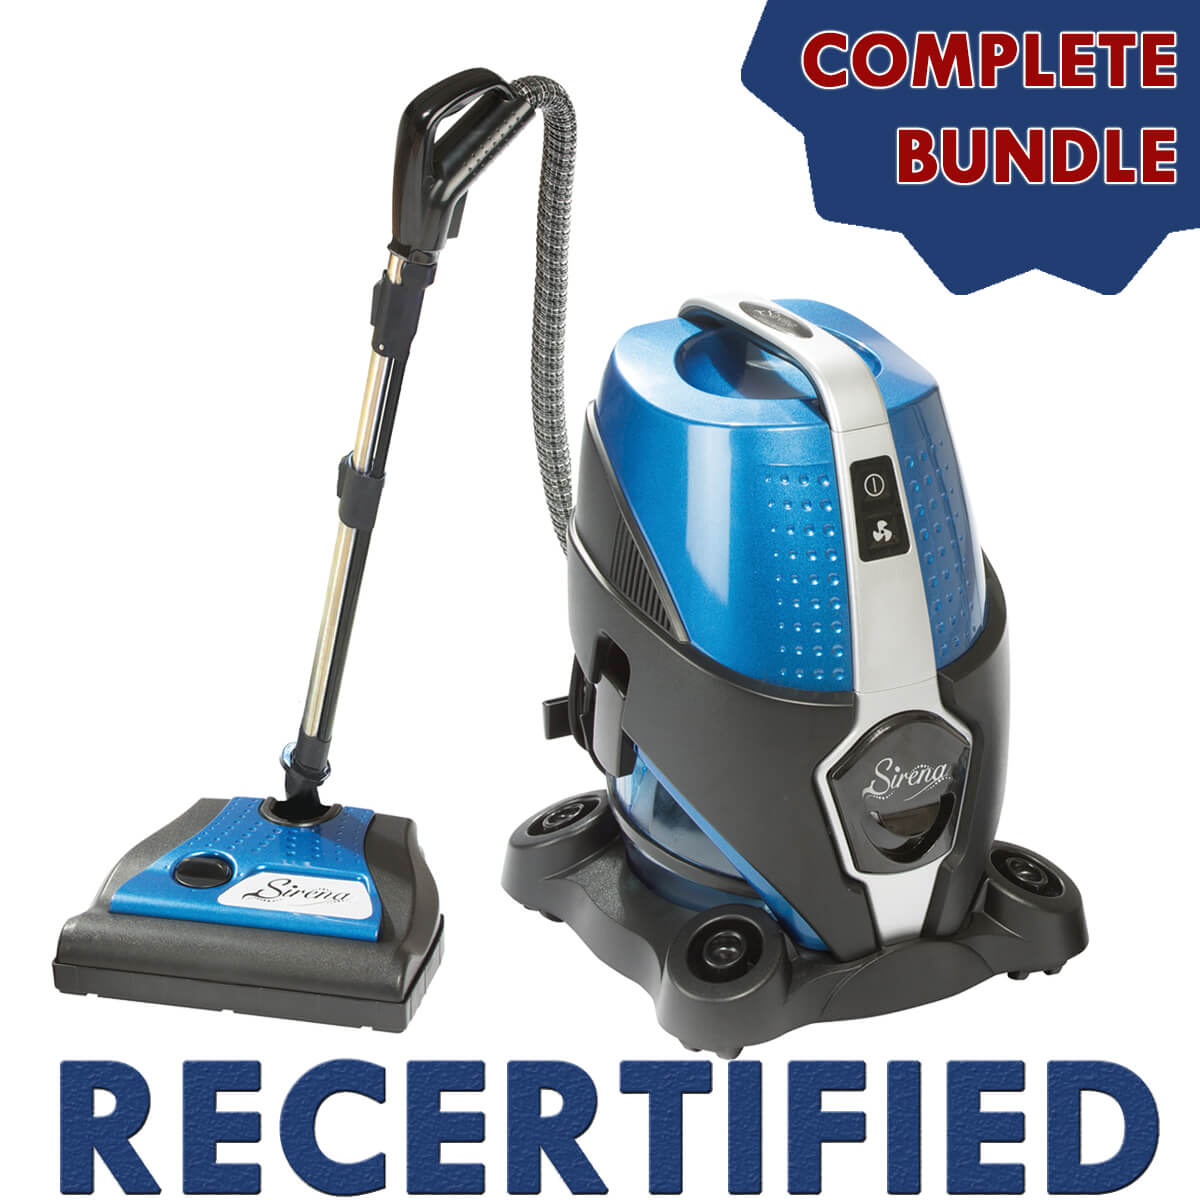 Sirena Recertified Complete Bundle (w/ Quick-Connect Power Nozzle)